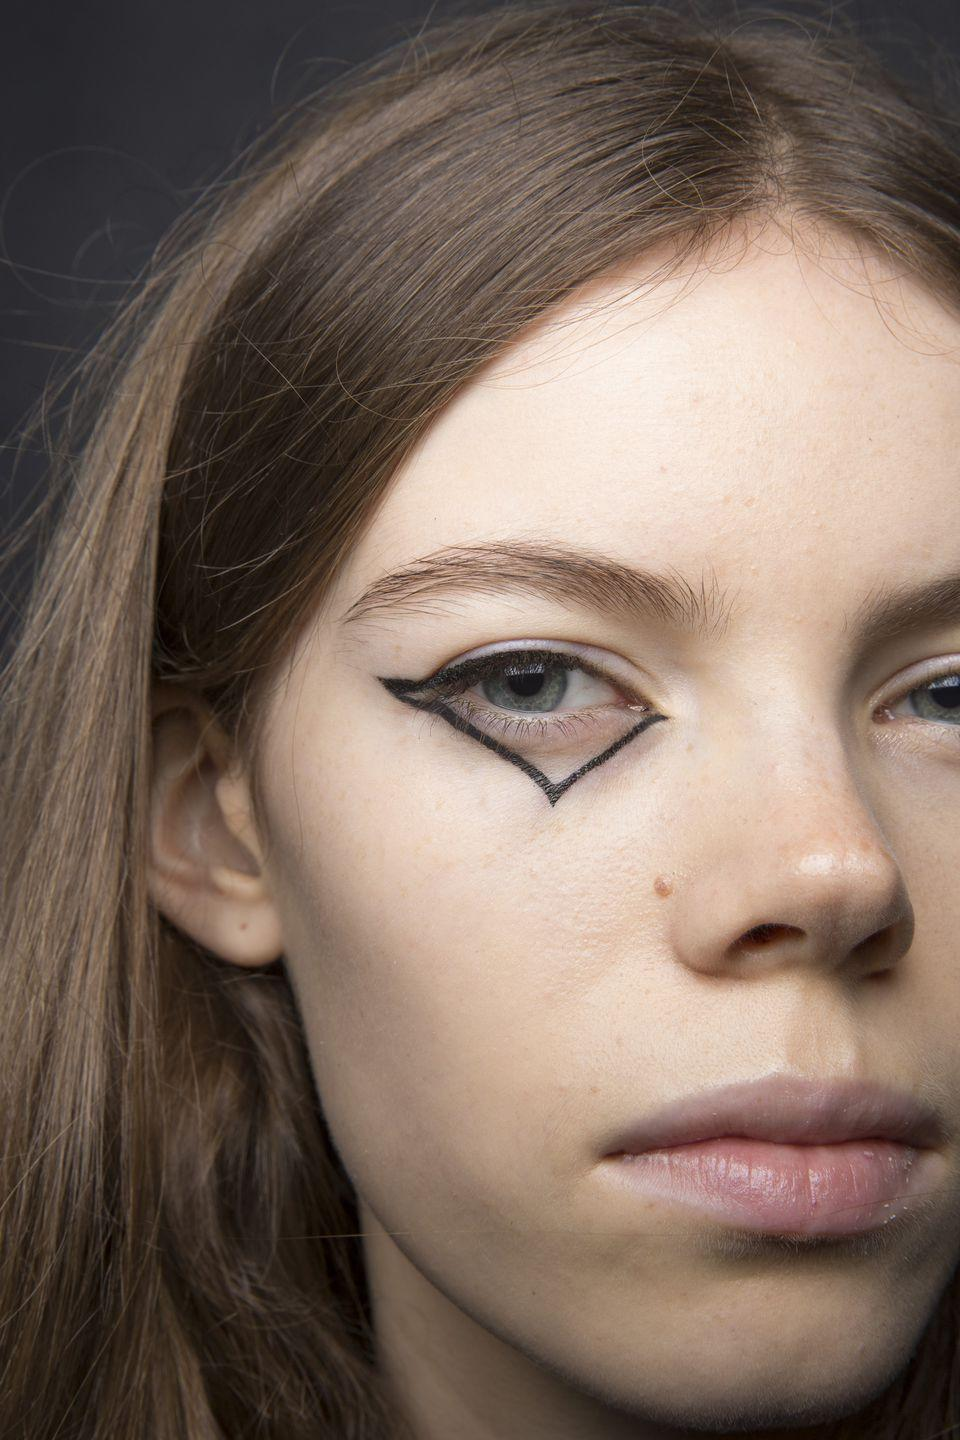 <p>Eyeliner took a downward turn (in a good way!) at Coach's spring show. A handful of models walked the runway wearing a cat-eye that continued along the lower lashline and down into a triangle.</p>